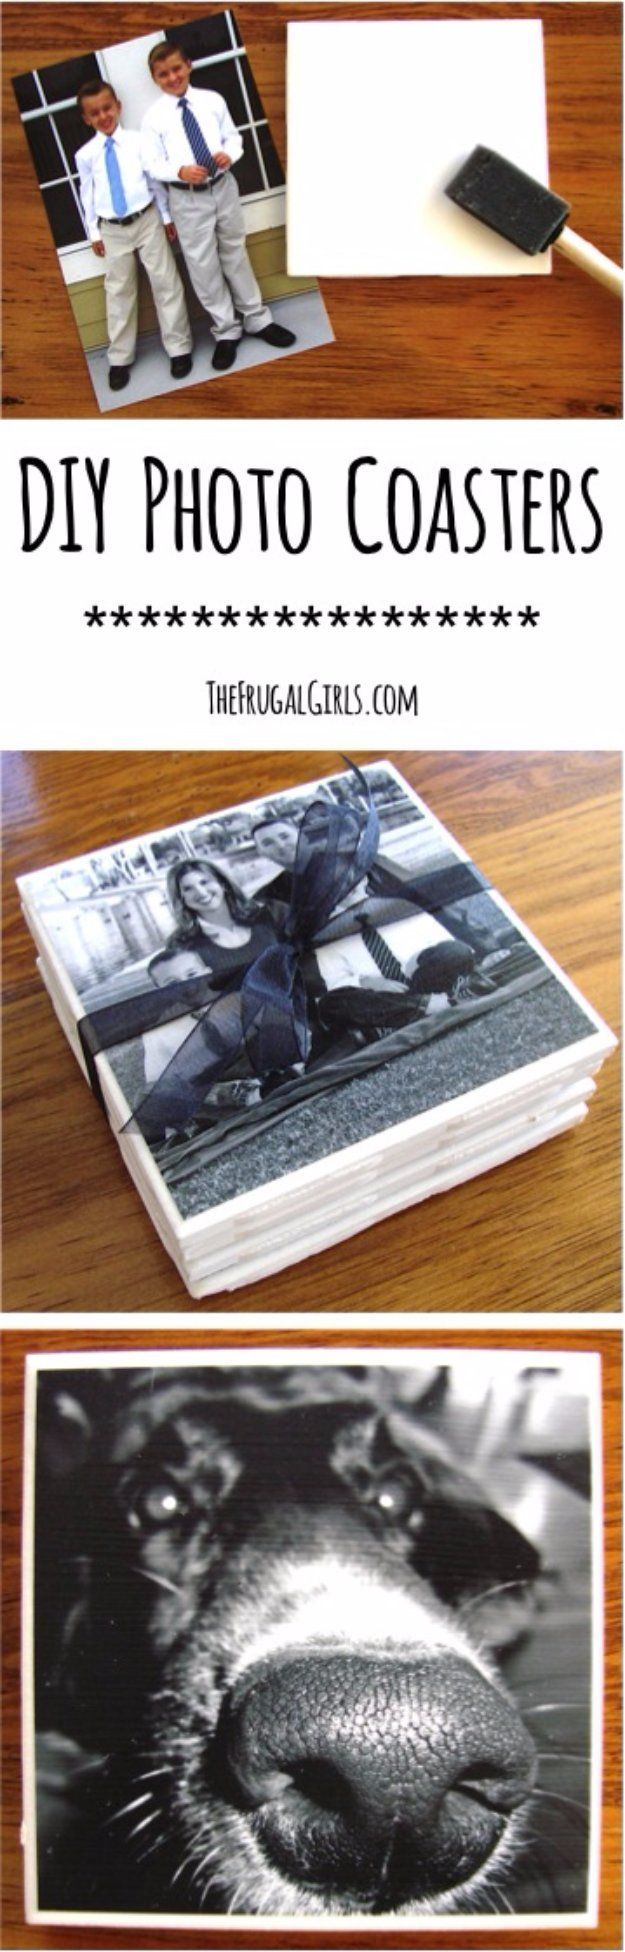 Easy Crafts To Make and Sell - Beautiful Photo Coasters - Cool Homemade Craft Projects You Can Sell On Etsy, at Craft Fairs, Online and in Stores. Quick and Cheap DIY Ideas that Adults and Even Teens Can Make diyjoy.com/...